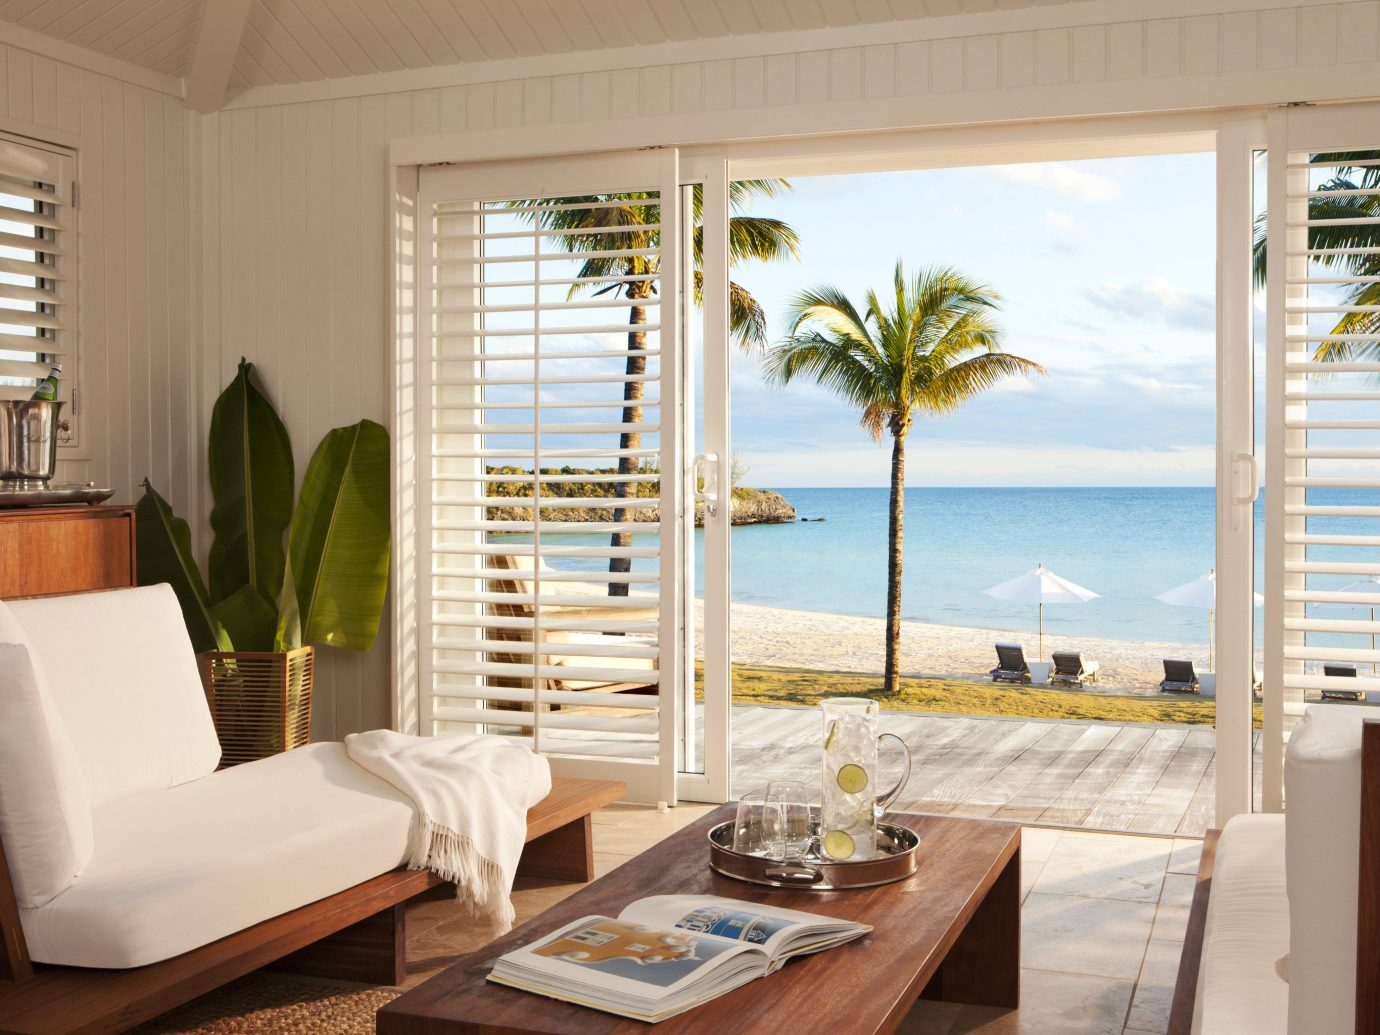 Living room and ocean view of The Cove Eleuthera